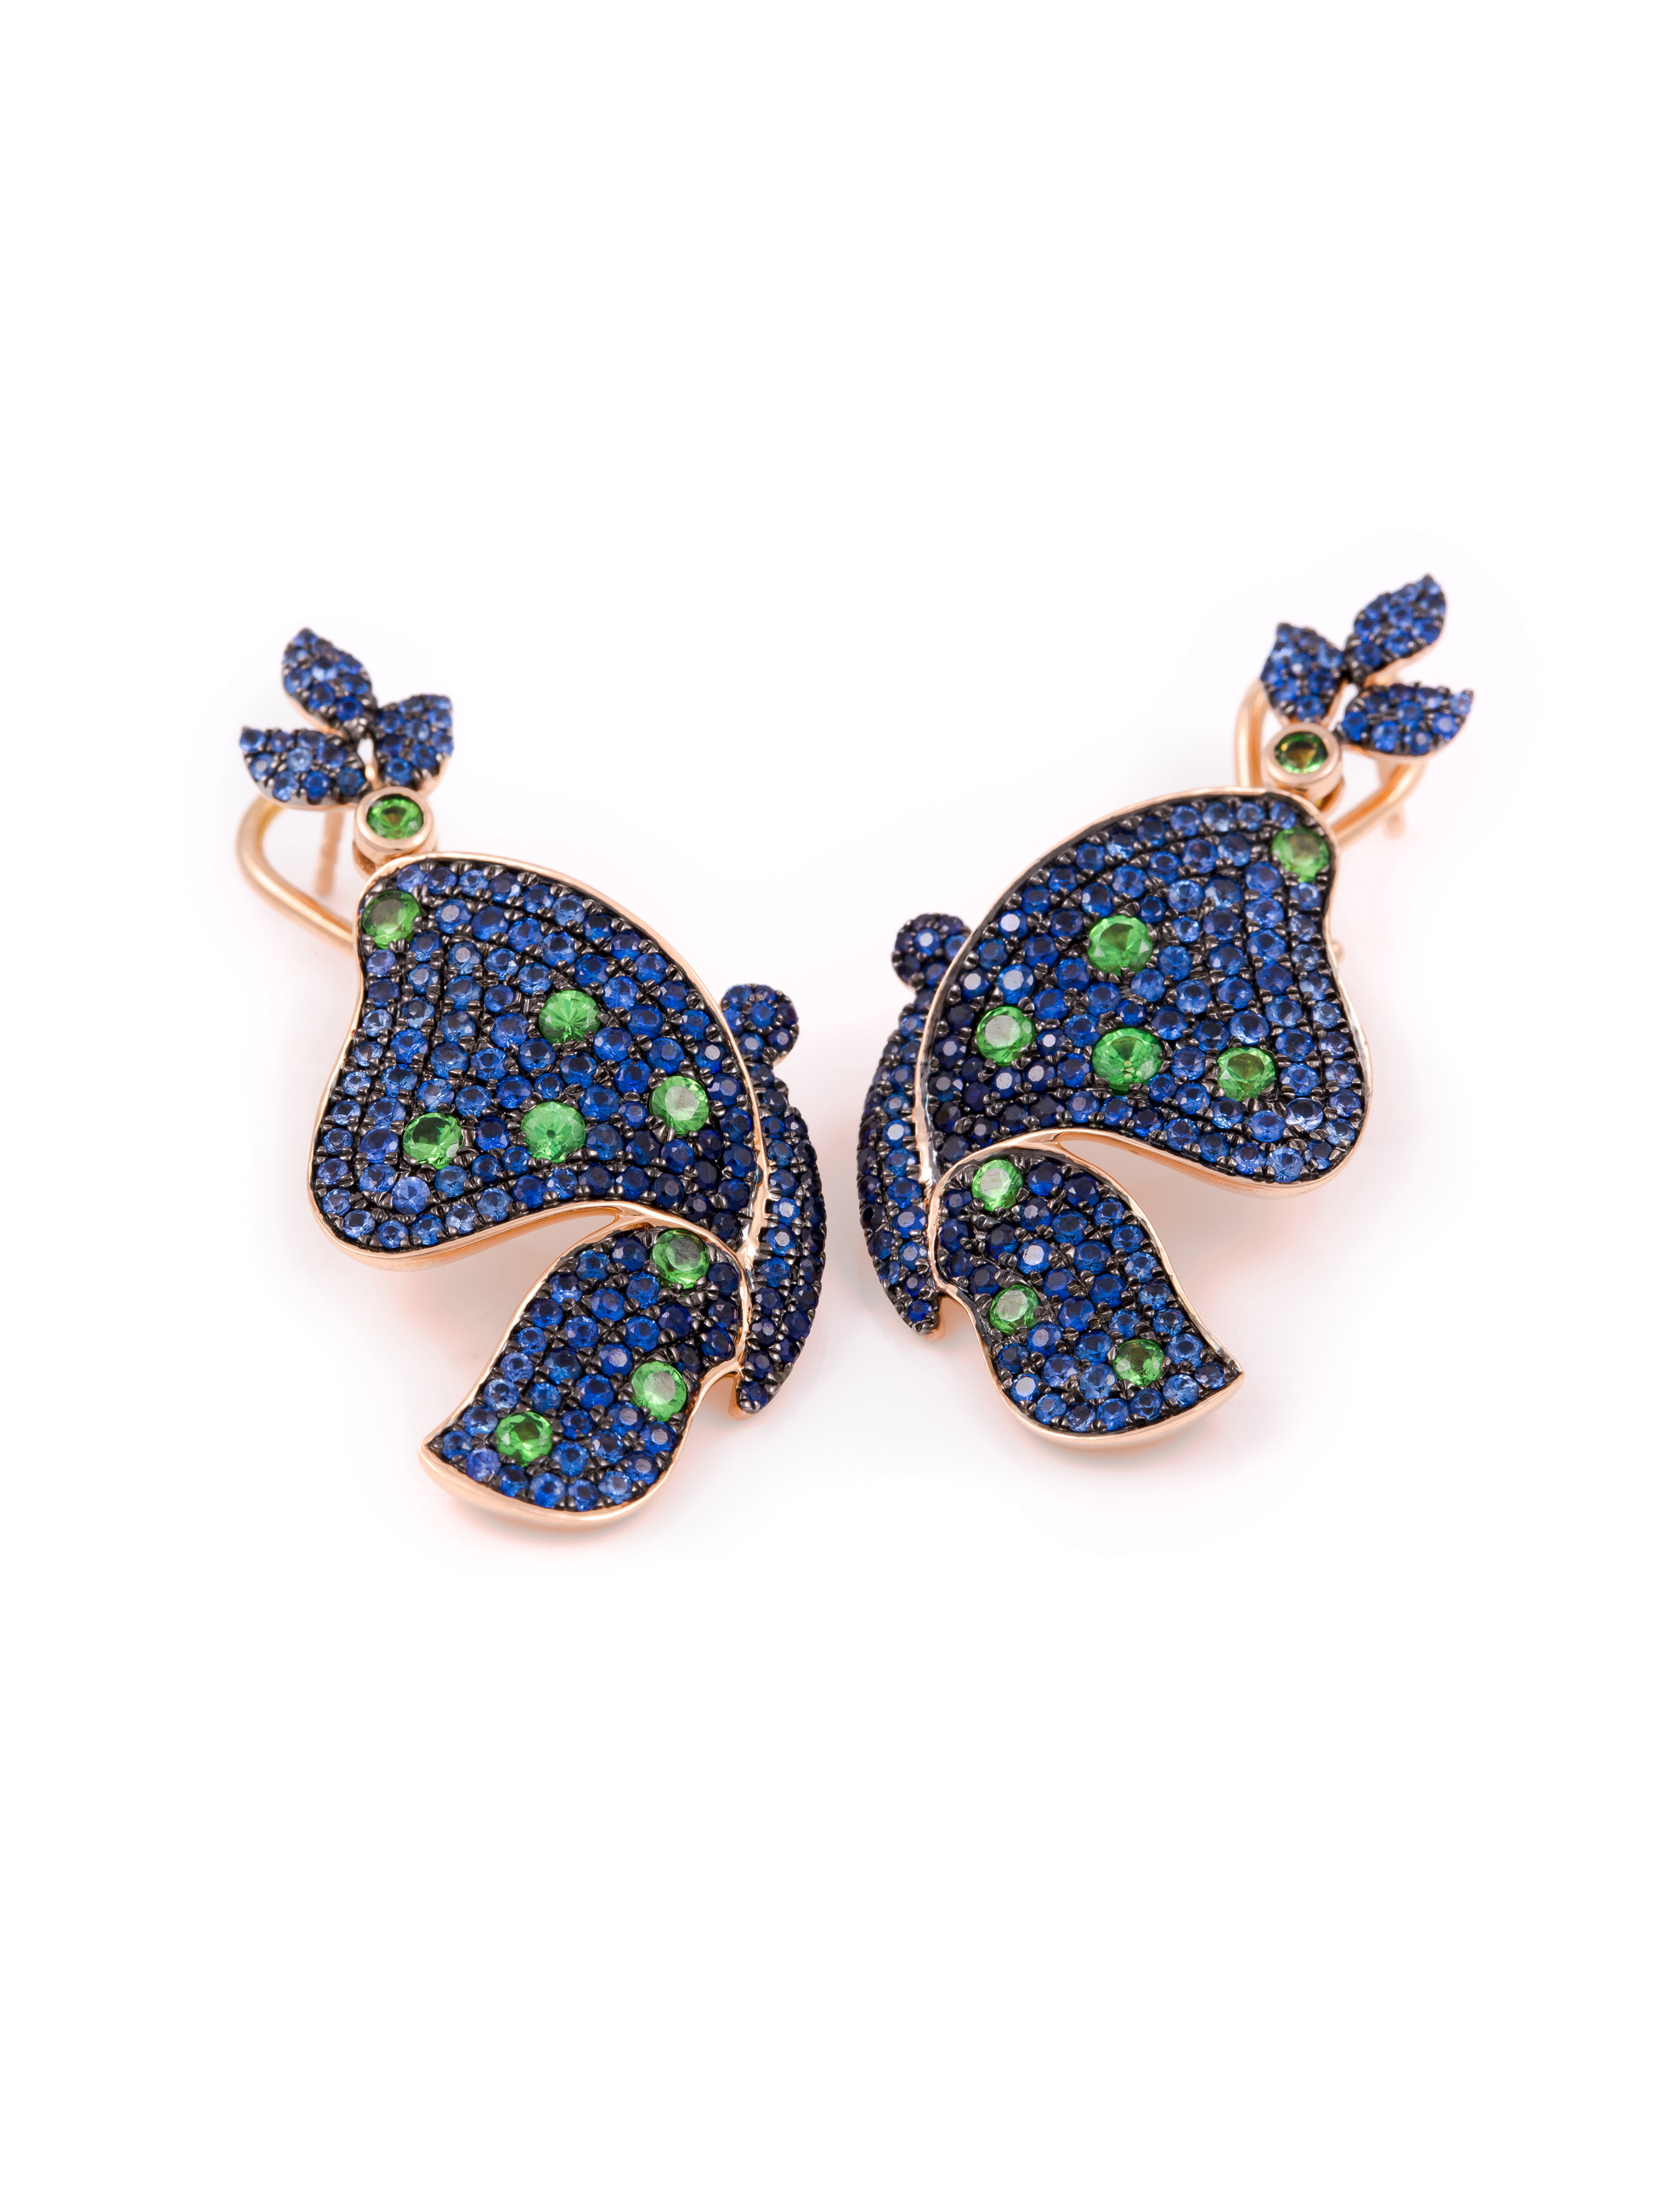 fifty sapphire cartier and pin of jade brooches butterfly lapis shades lazuli